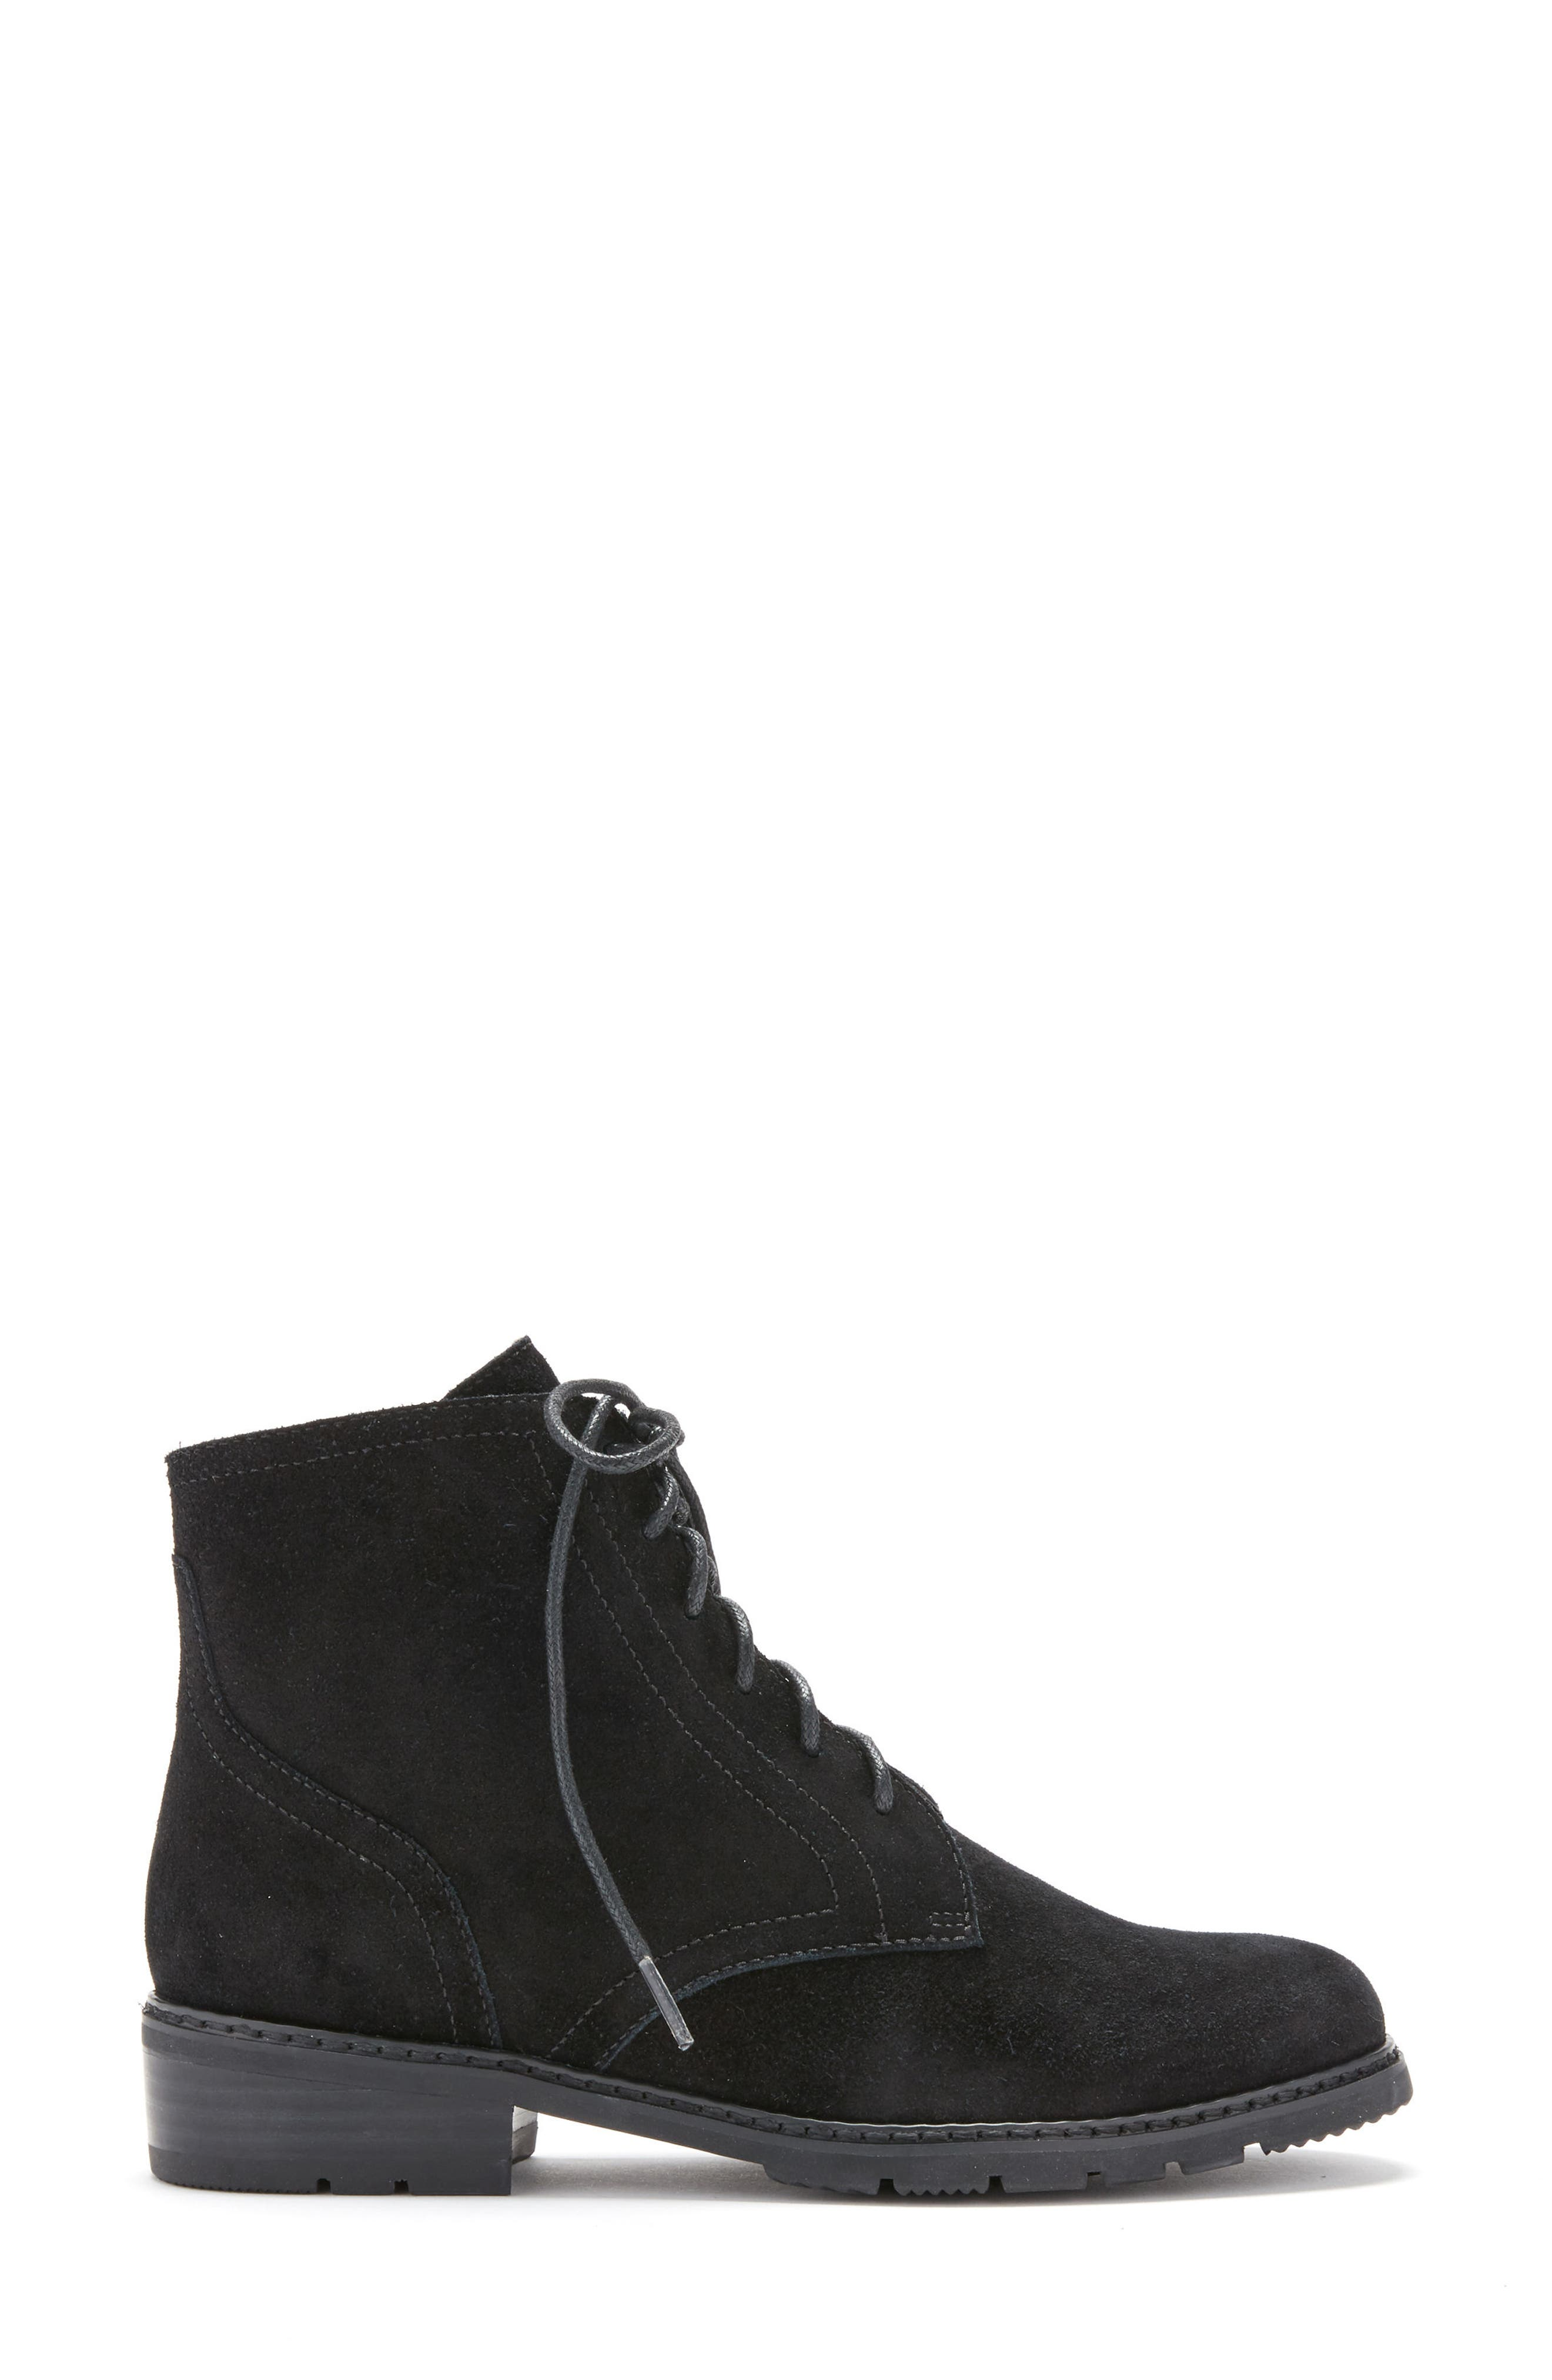 Vivi Waterproof Boot,                             Alternate thumbnail 3, color,                             Black Suede